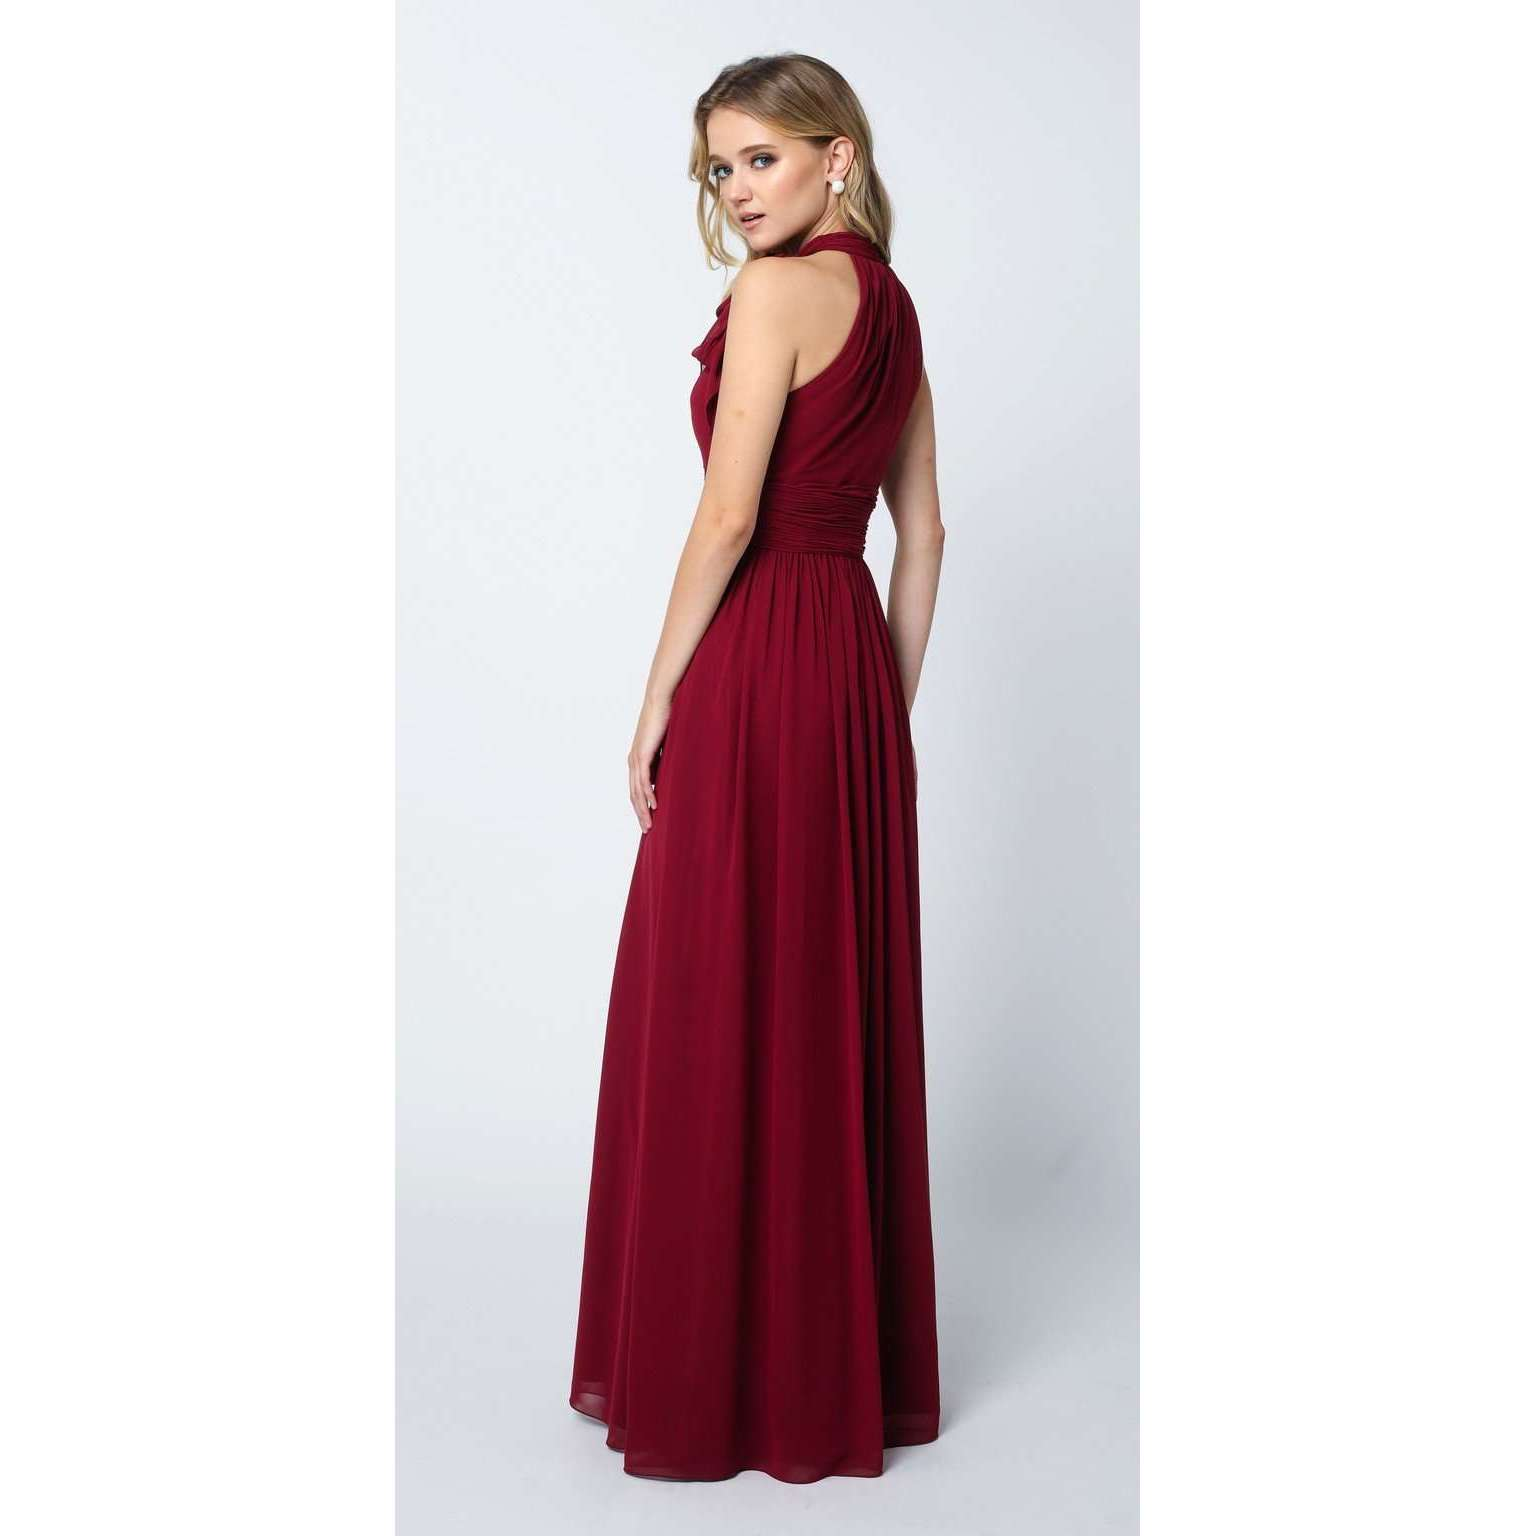 Long Sleeveless High-Neck Prom Dress 672 - Julietdresses